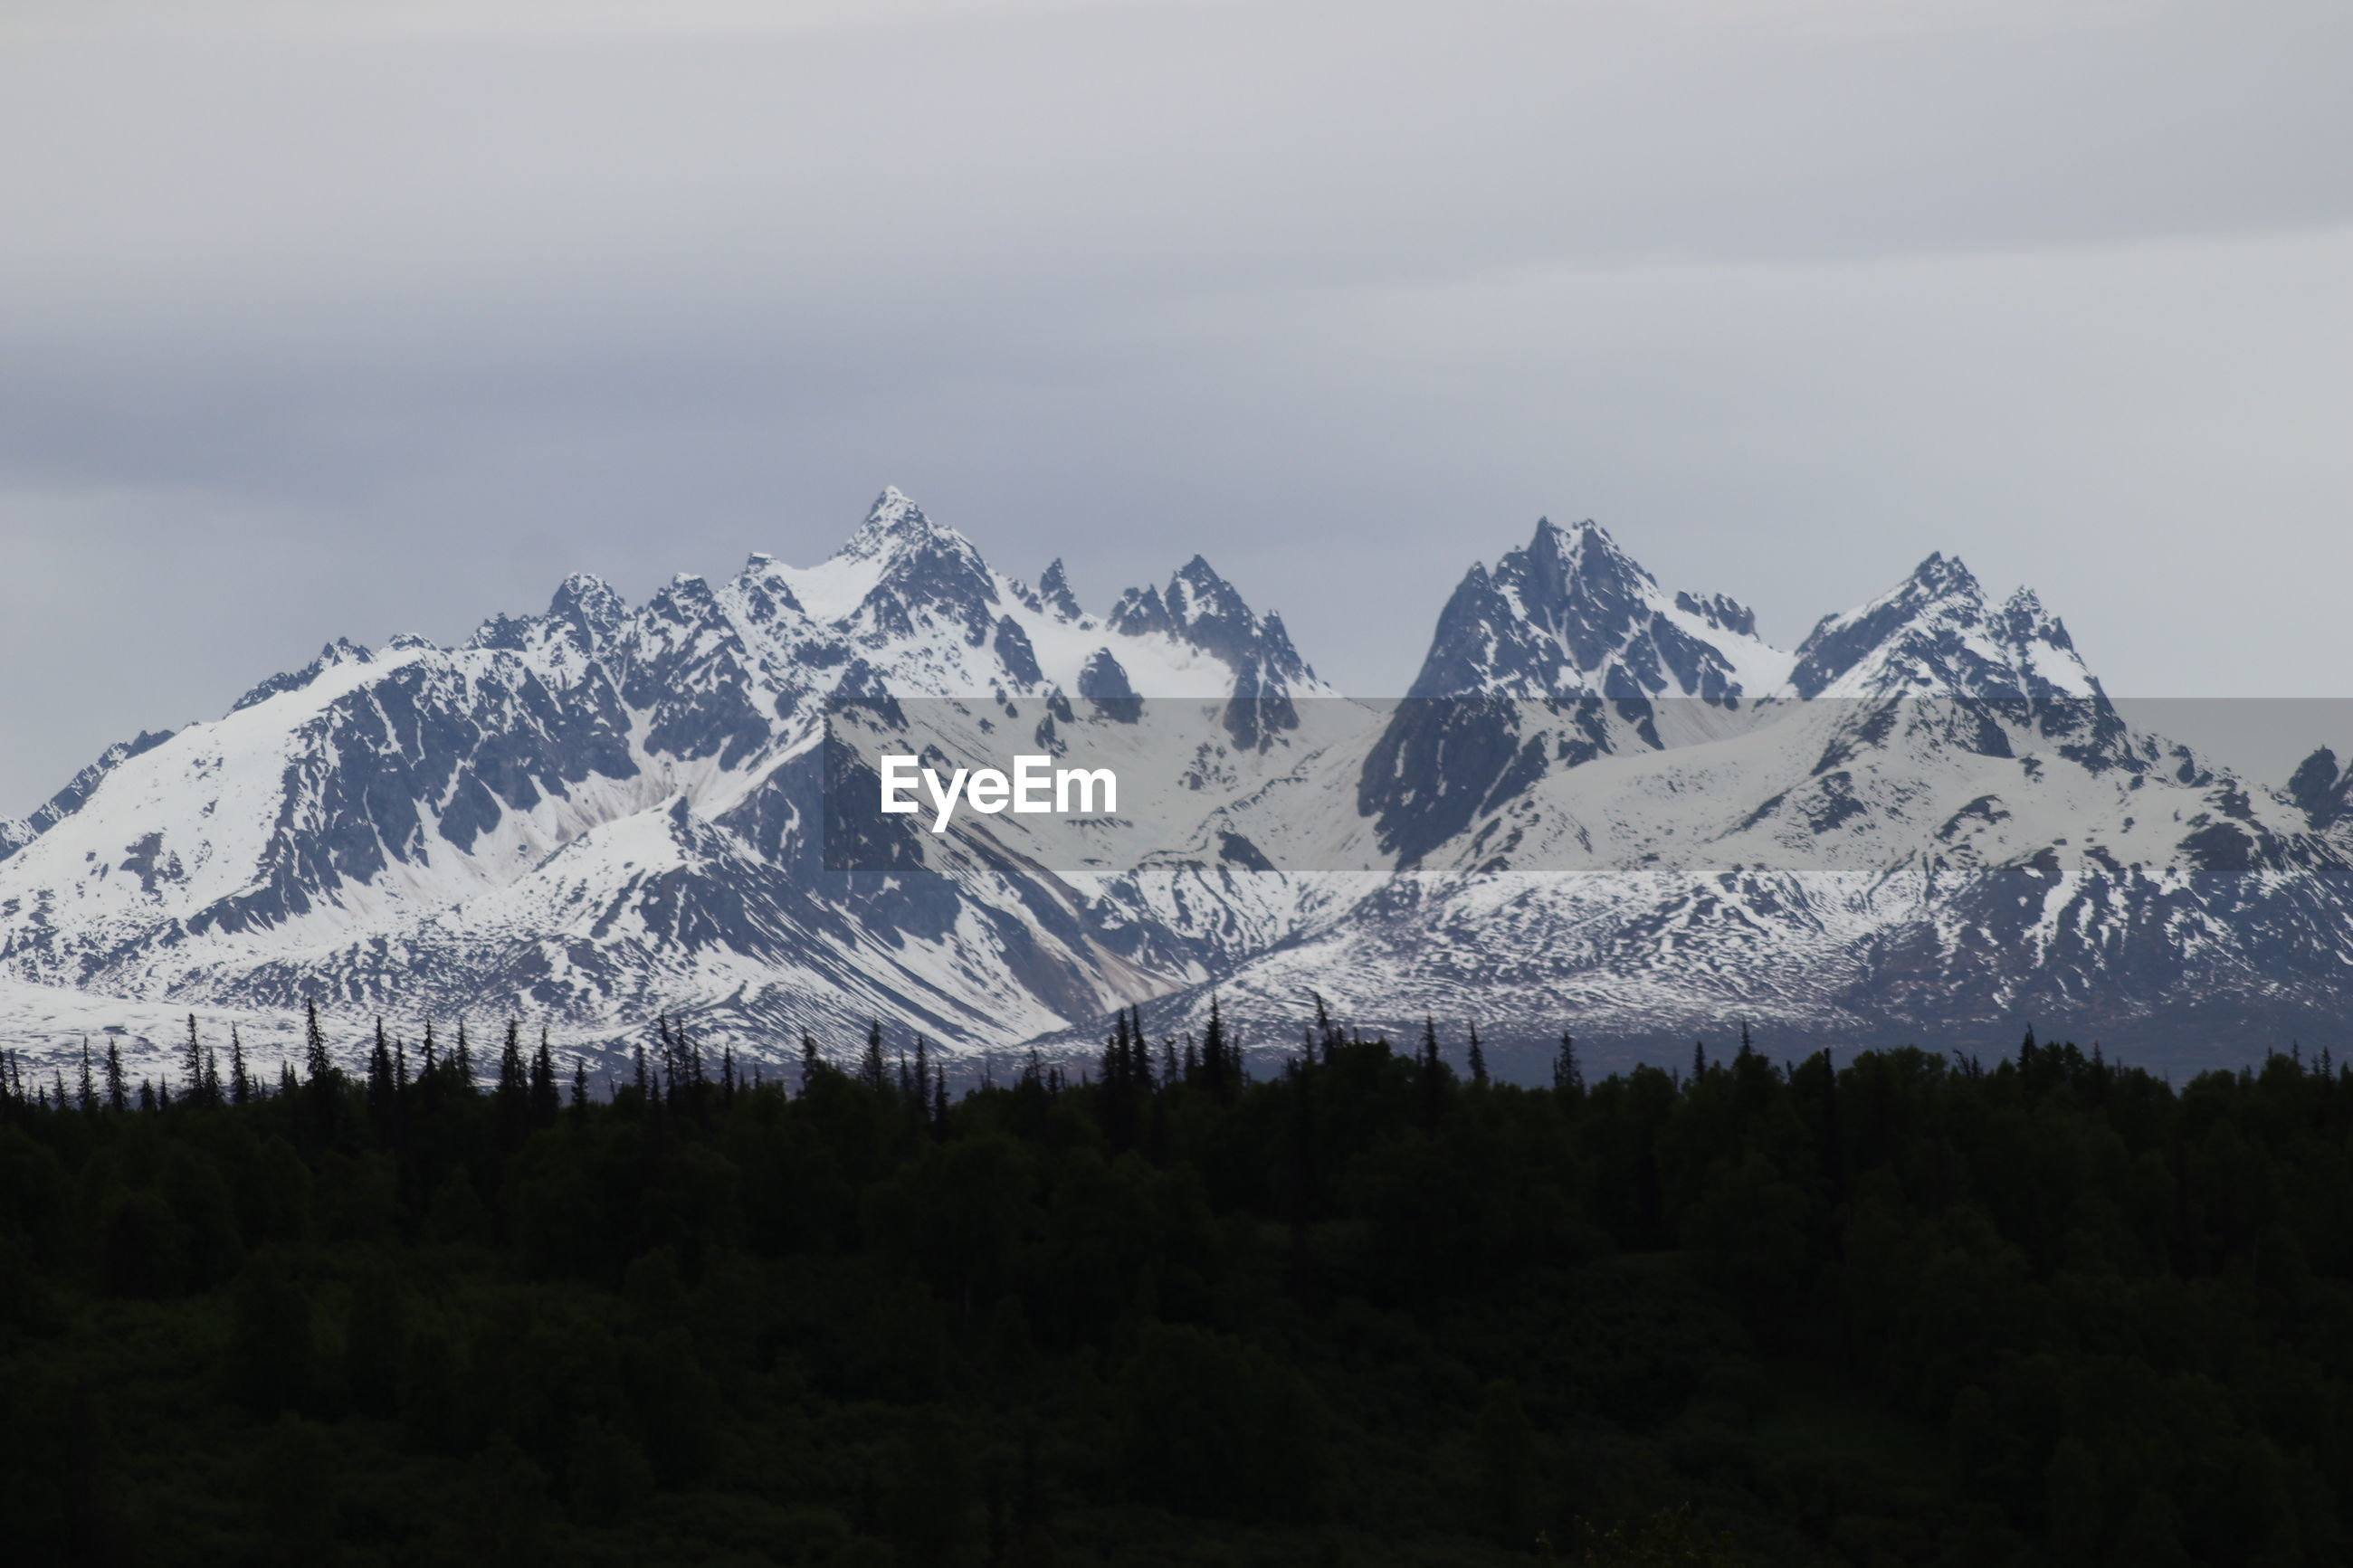 VIEW OF SNOWCAPPED MOUNTAIN AGAINST SKY